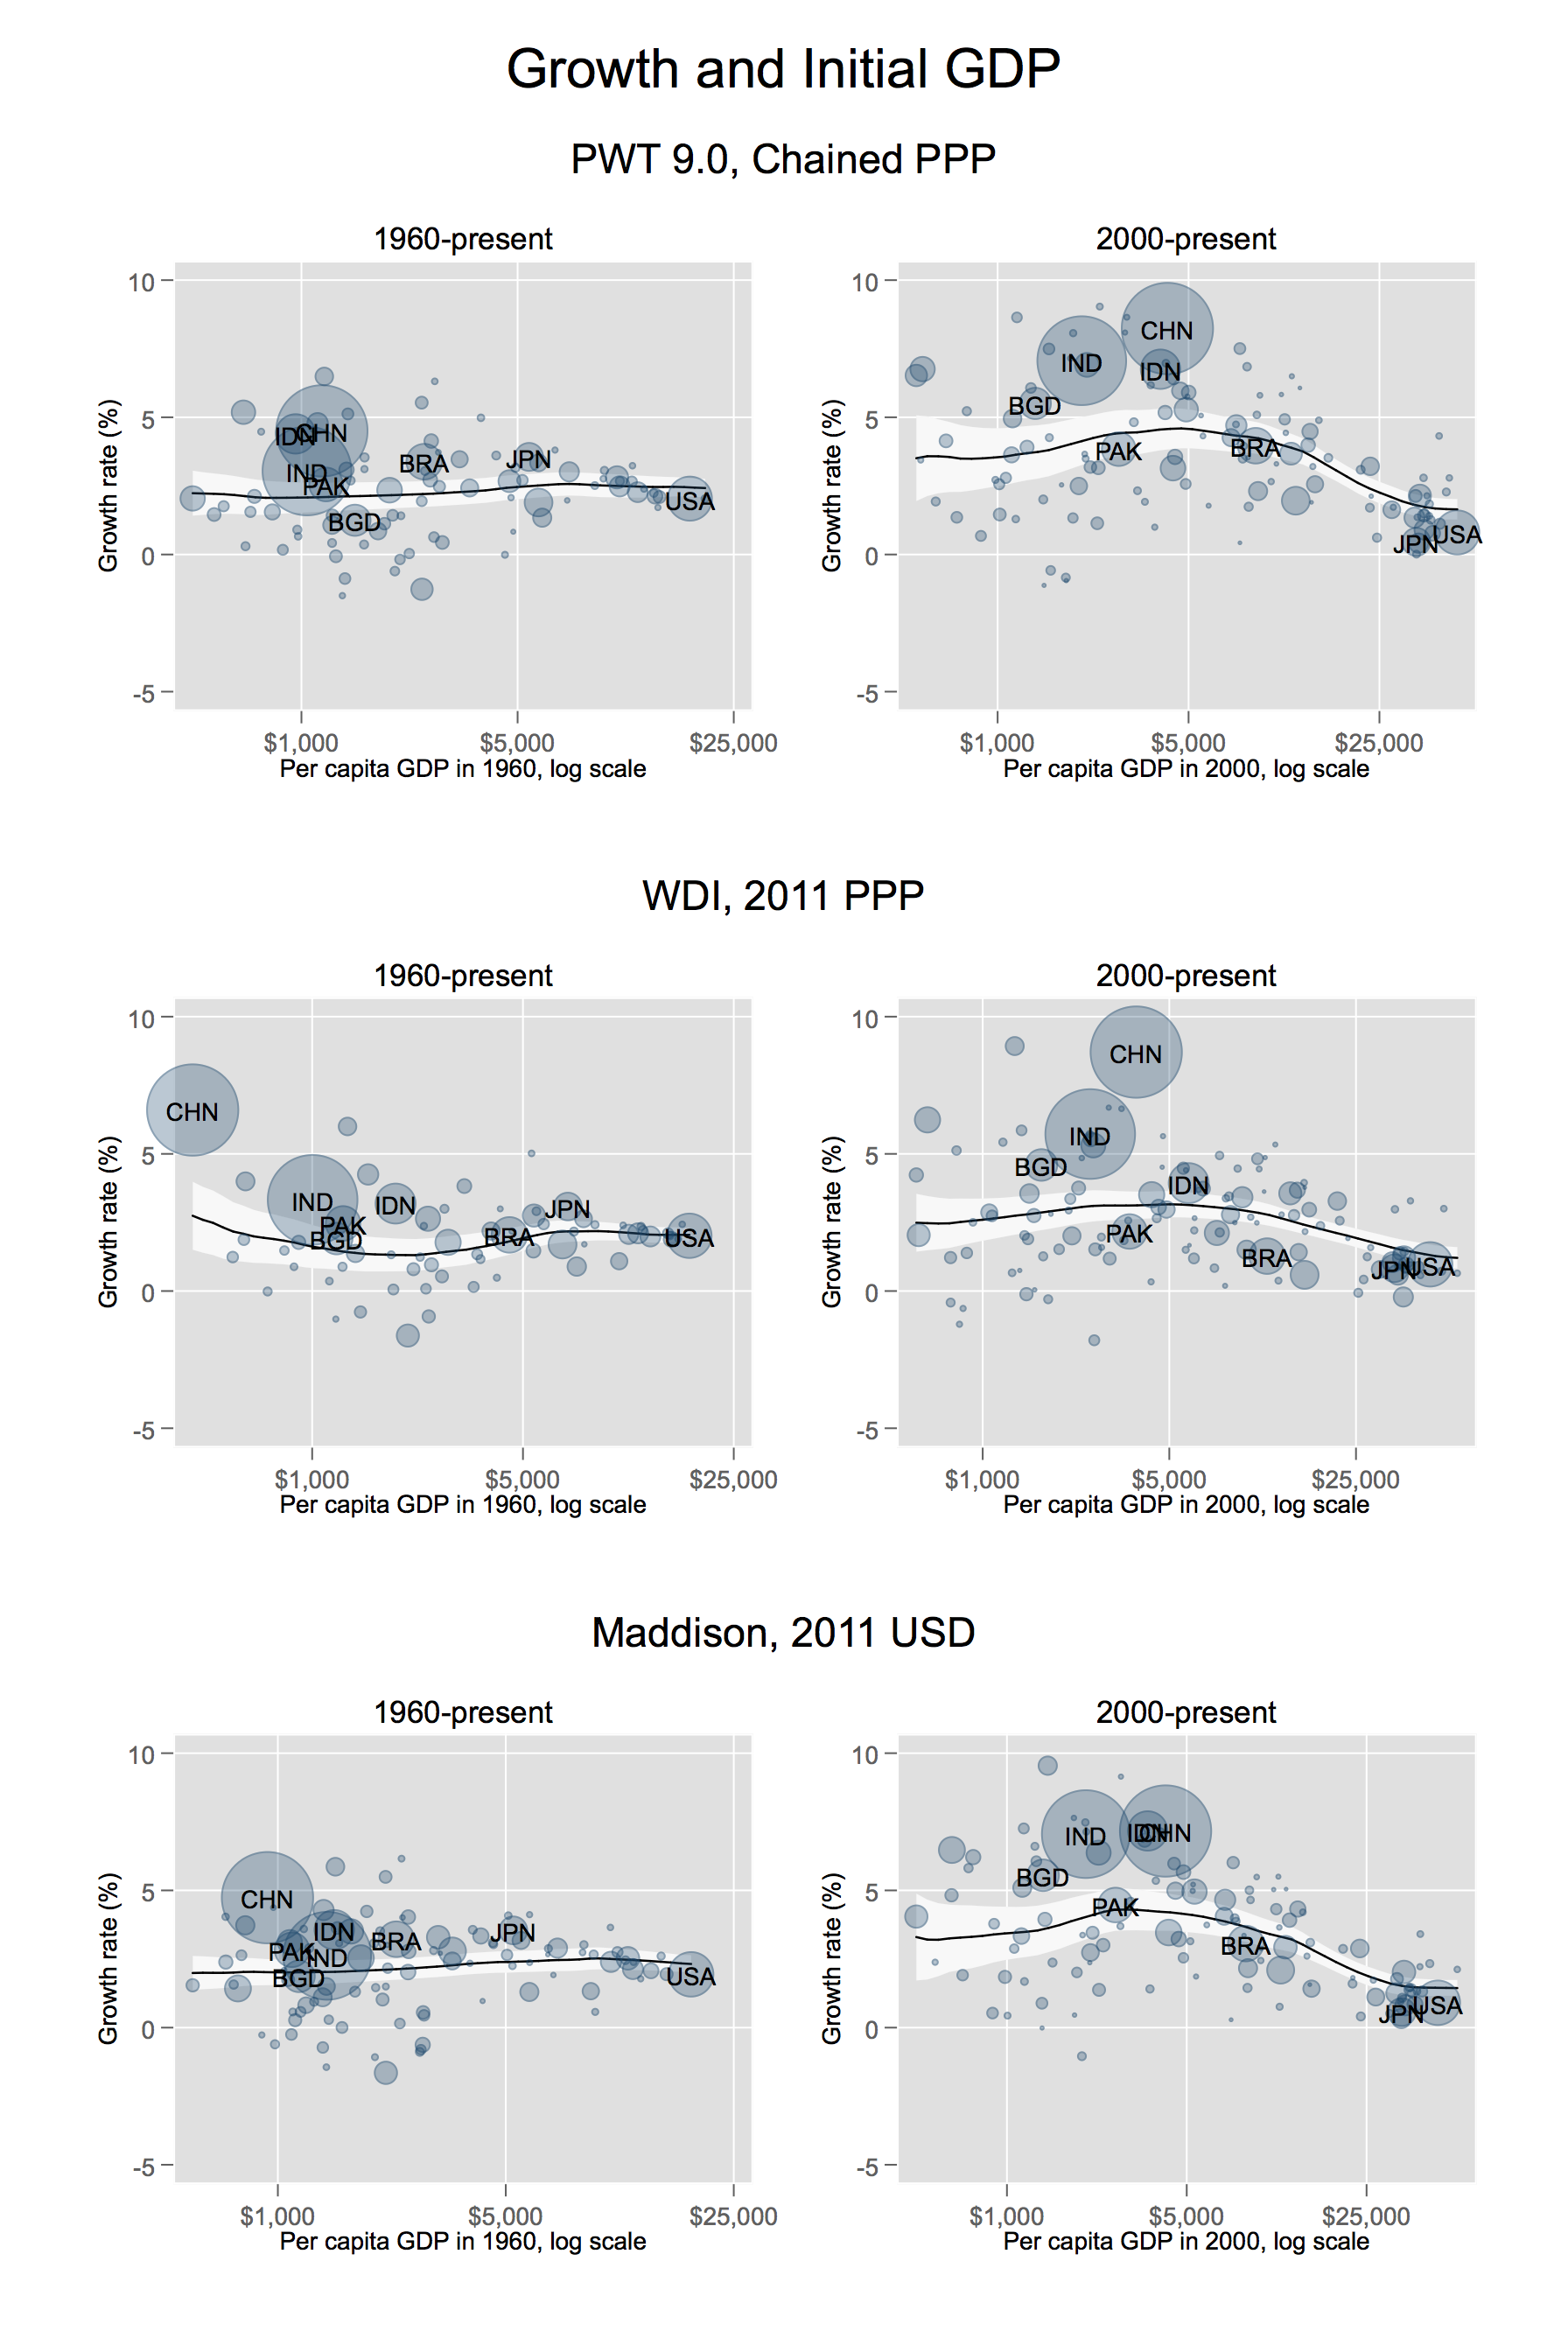 Growth and initial GDP, grouped by PWT 9.0, Chained PPP / WDI, 2011 PPP / Maddison, 2011 USD